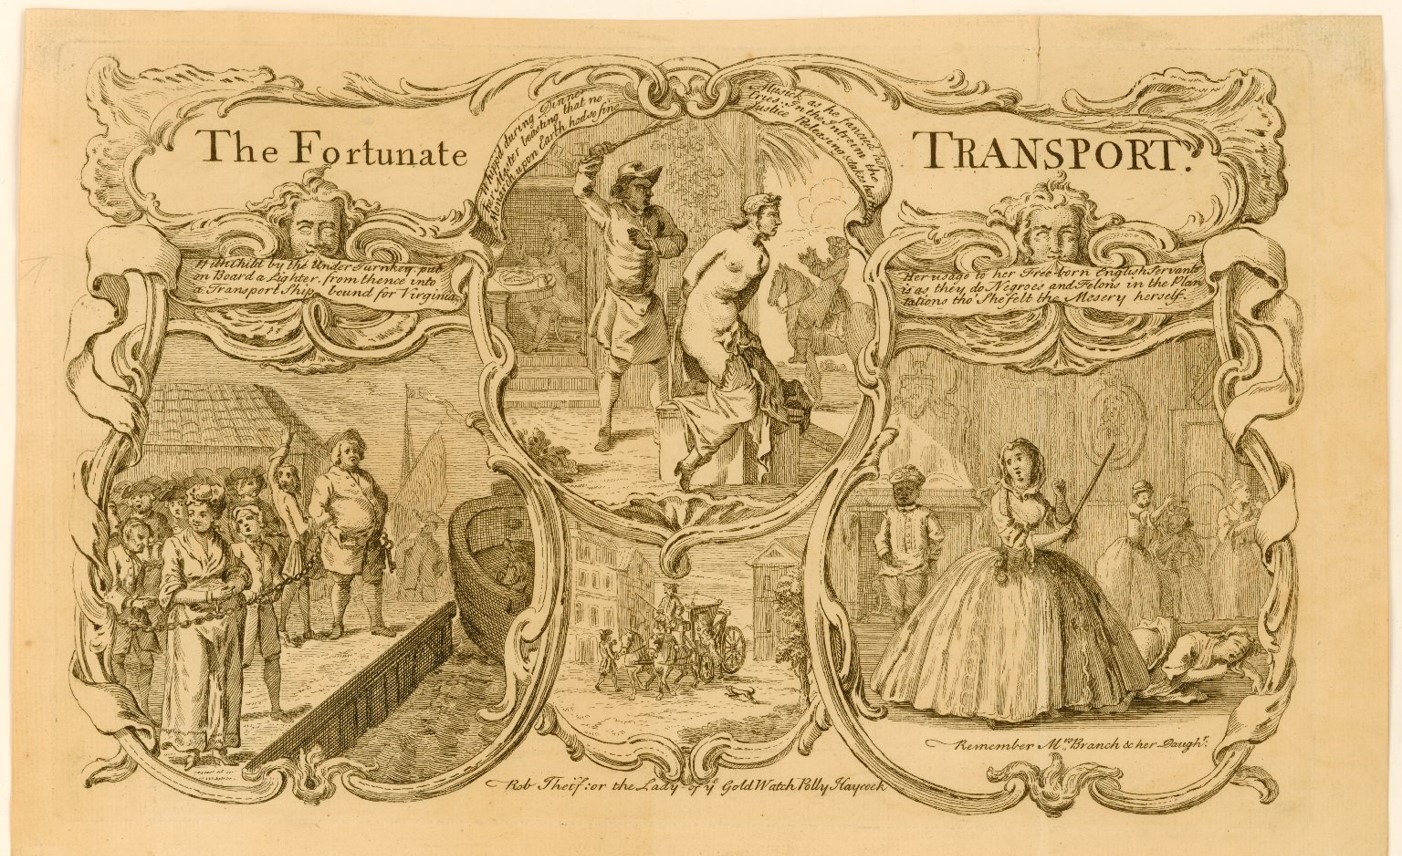 """""""The Fortunate Transport """"(c.1770), based on The Fortunate Transport; or, The Secret History of the Life and Adventures of Polly Haycock (London: T. Taylor, 1750). The three vignettes are labelled: """"[1] With Child by the Under Turnkey, put on Board a Lighter, from thence to a transport ship to Virginia. [2] Whipp'd during Dinner her Master boasting that no Monarch upon Earth had so fine Musick as he fancied her Cries. [3] Her usage to her Free-born English servants is as they do Negroes and Felons in the Plantations tho' She felt the Mesery herself."""" Source: http://jcb.lunaimaging.com/luna/servlet/detail/JCBMAPS~2~2~277~100287:The-Fortunate-TRANSPORT-"""